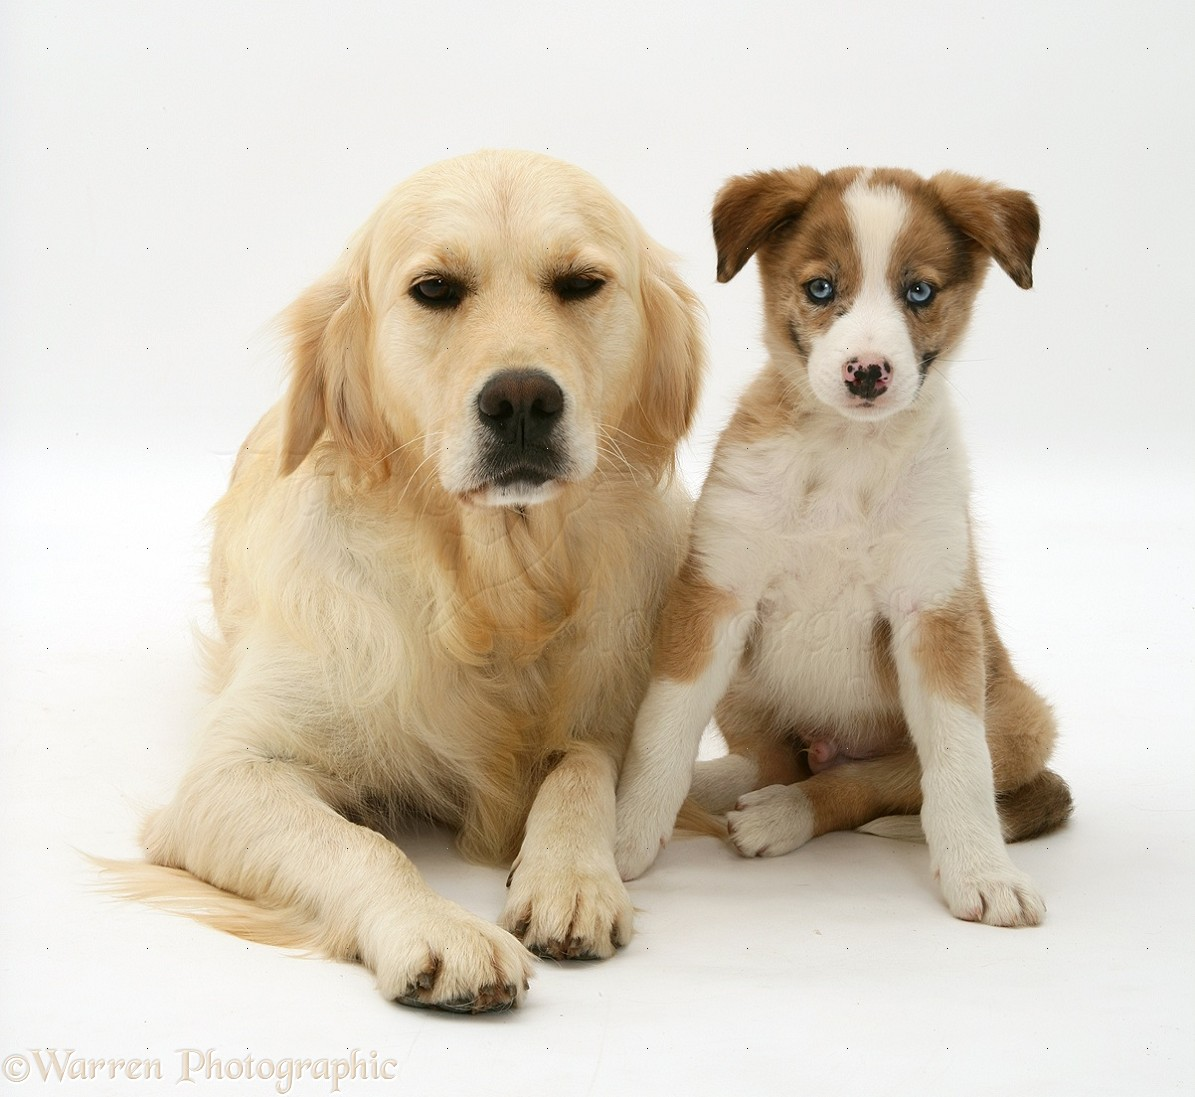 Dogs Golden Retriever And Border Collie Pup Photo Wp21763